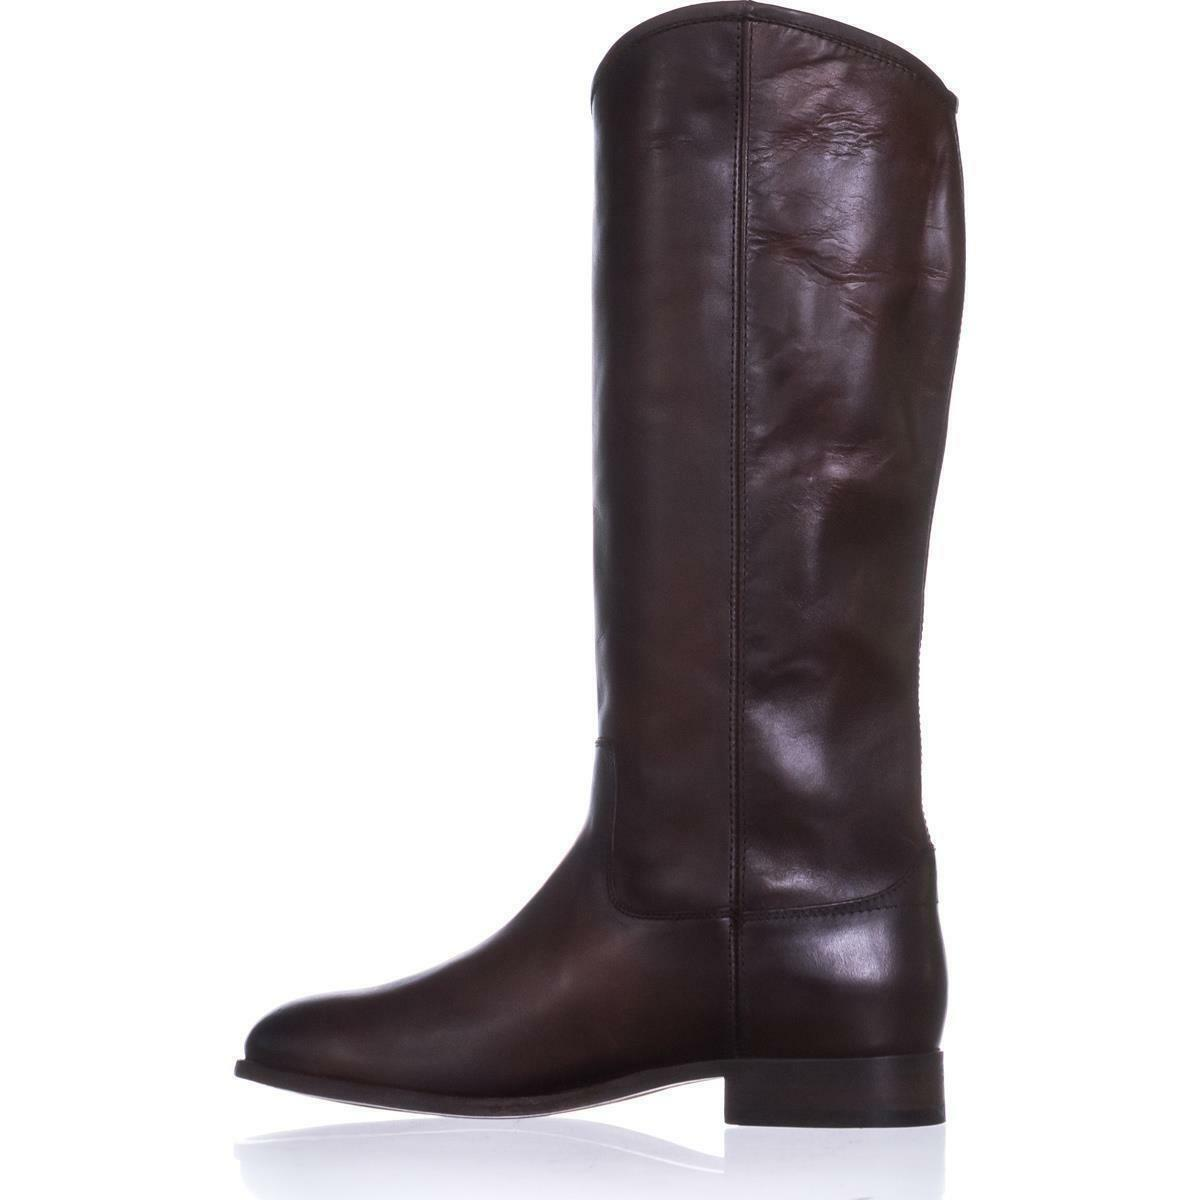 WOMEN'S FRYE MELISSA BUTTON 2 RIDING BOOTS IN REDWOOD 75448 75448 75448 ebd002